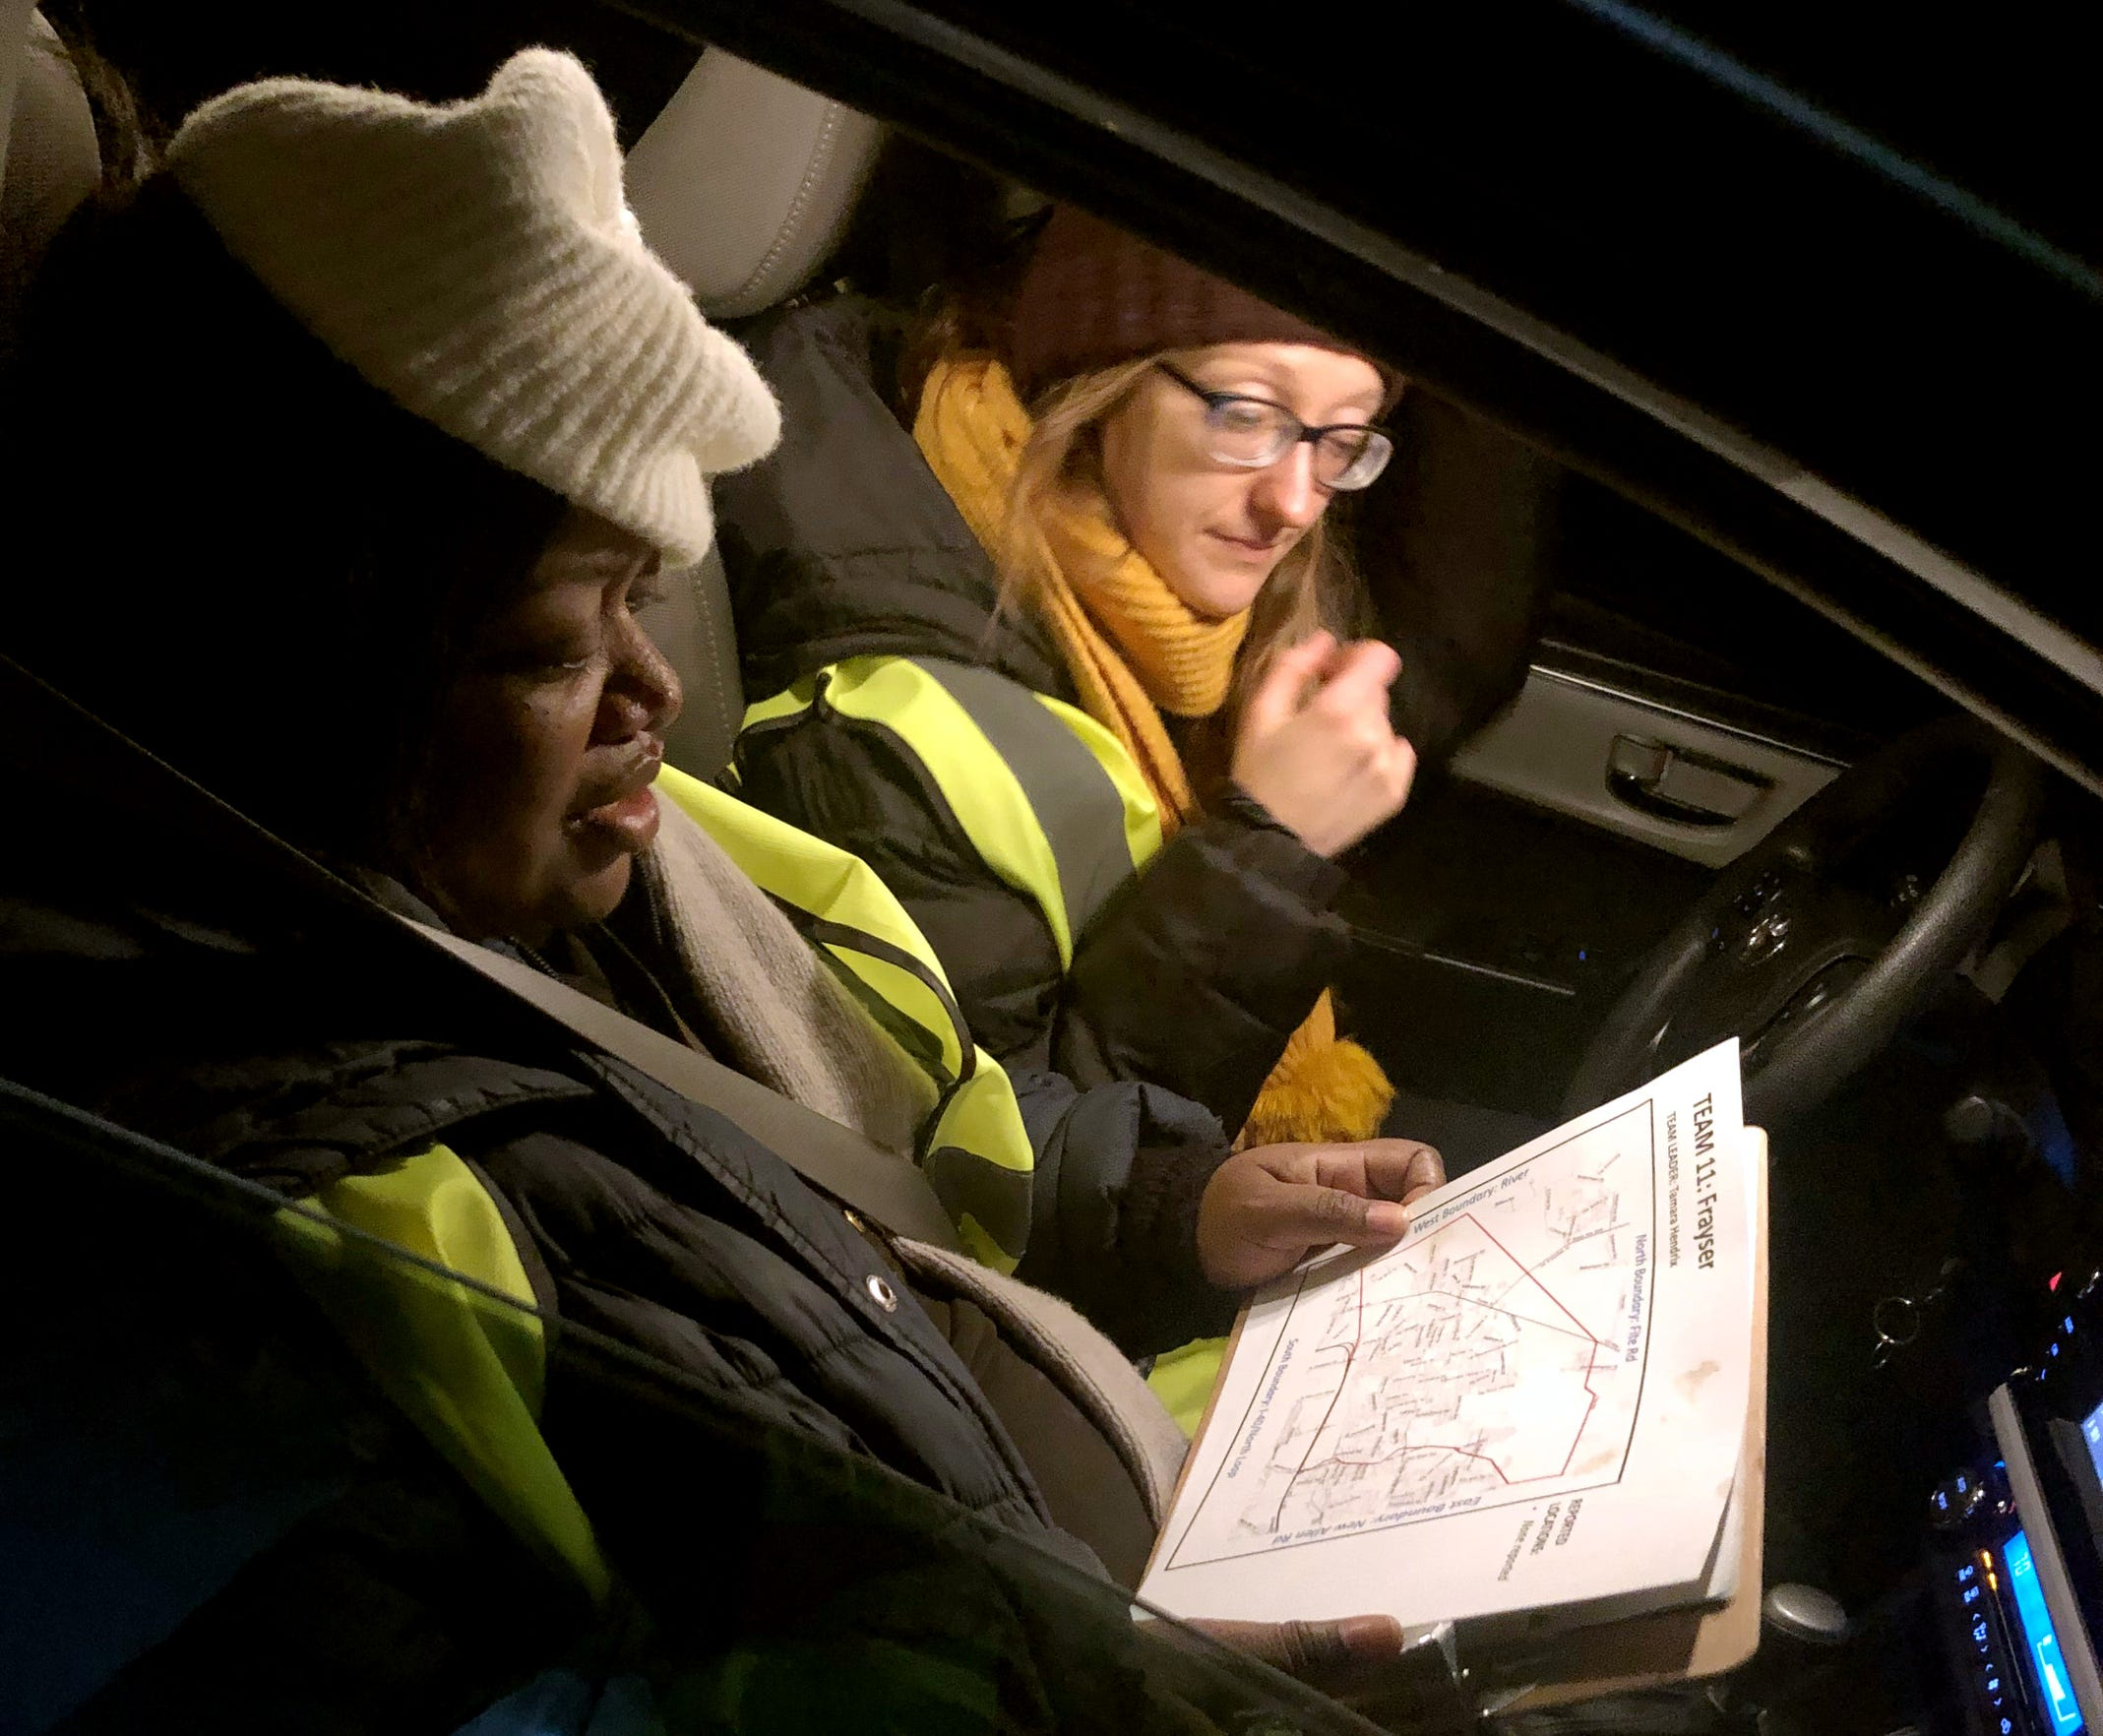 Tamara Hendrix and Ellen Paddock review a map of Frayser, their assigned area, while conducting the Point-In-Time count on January 22, 2020.